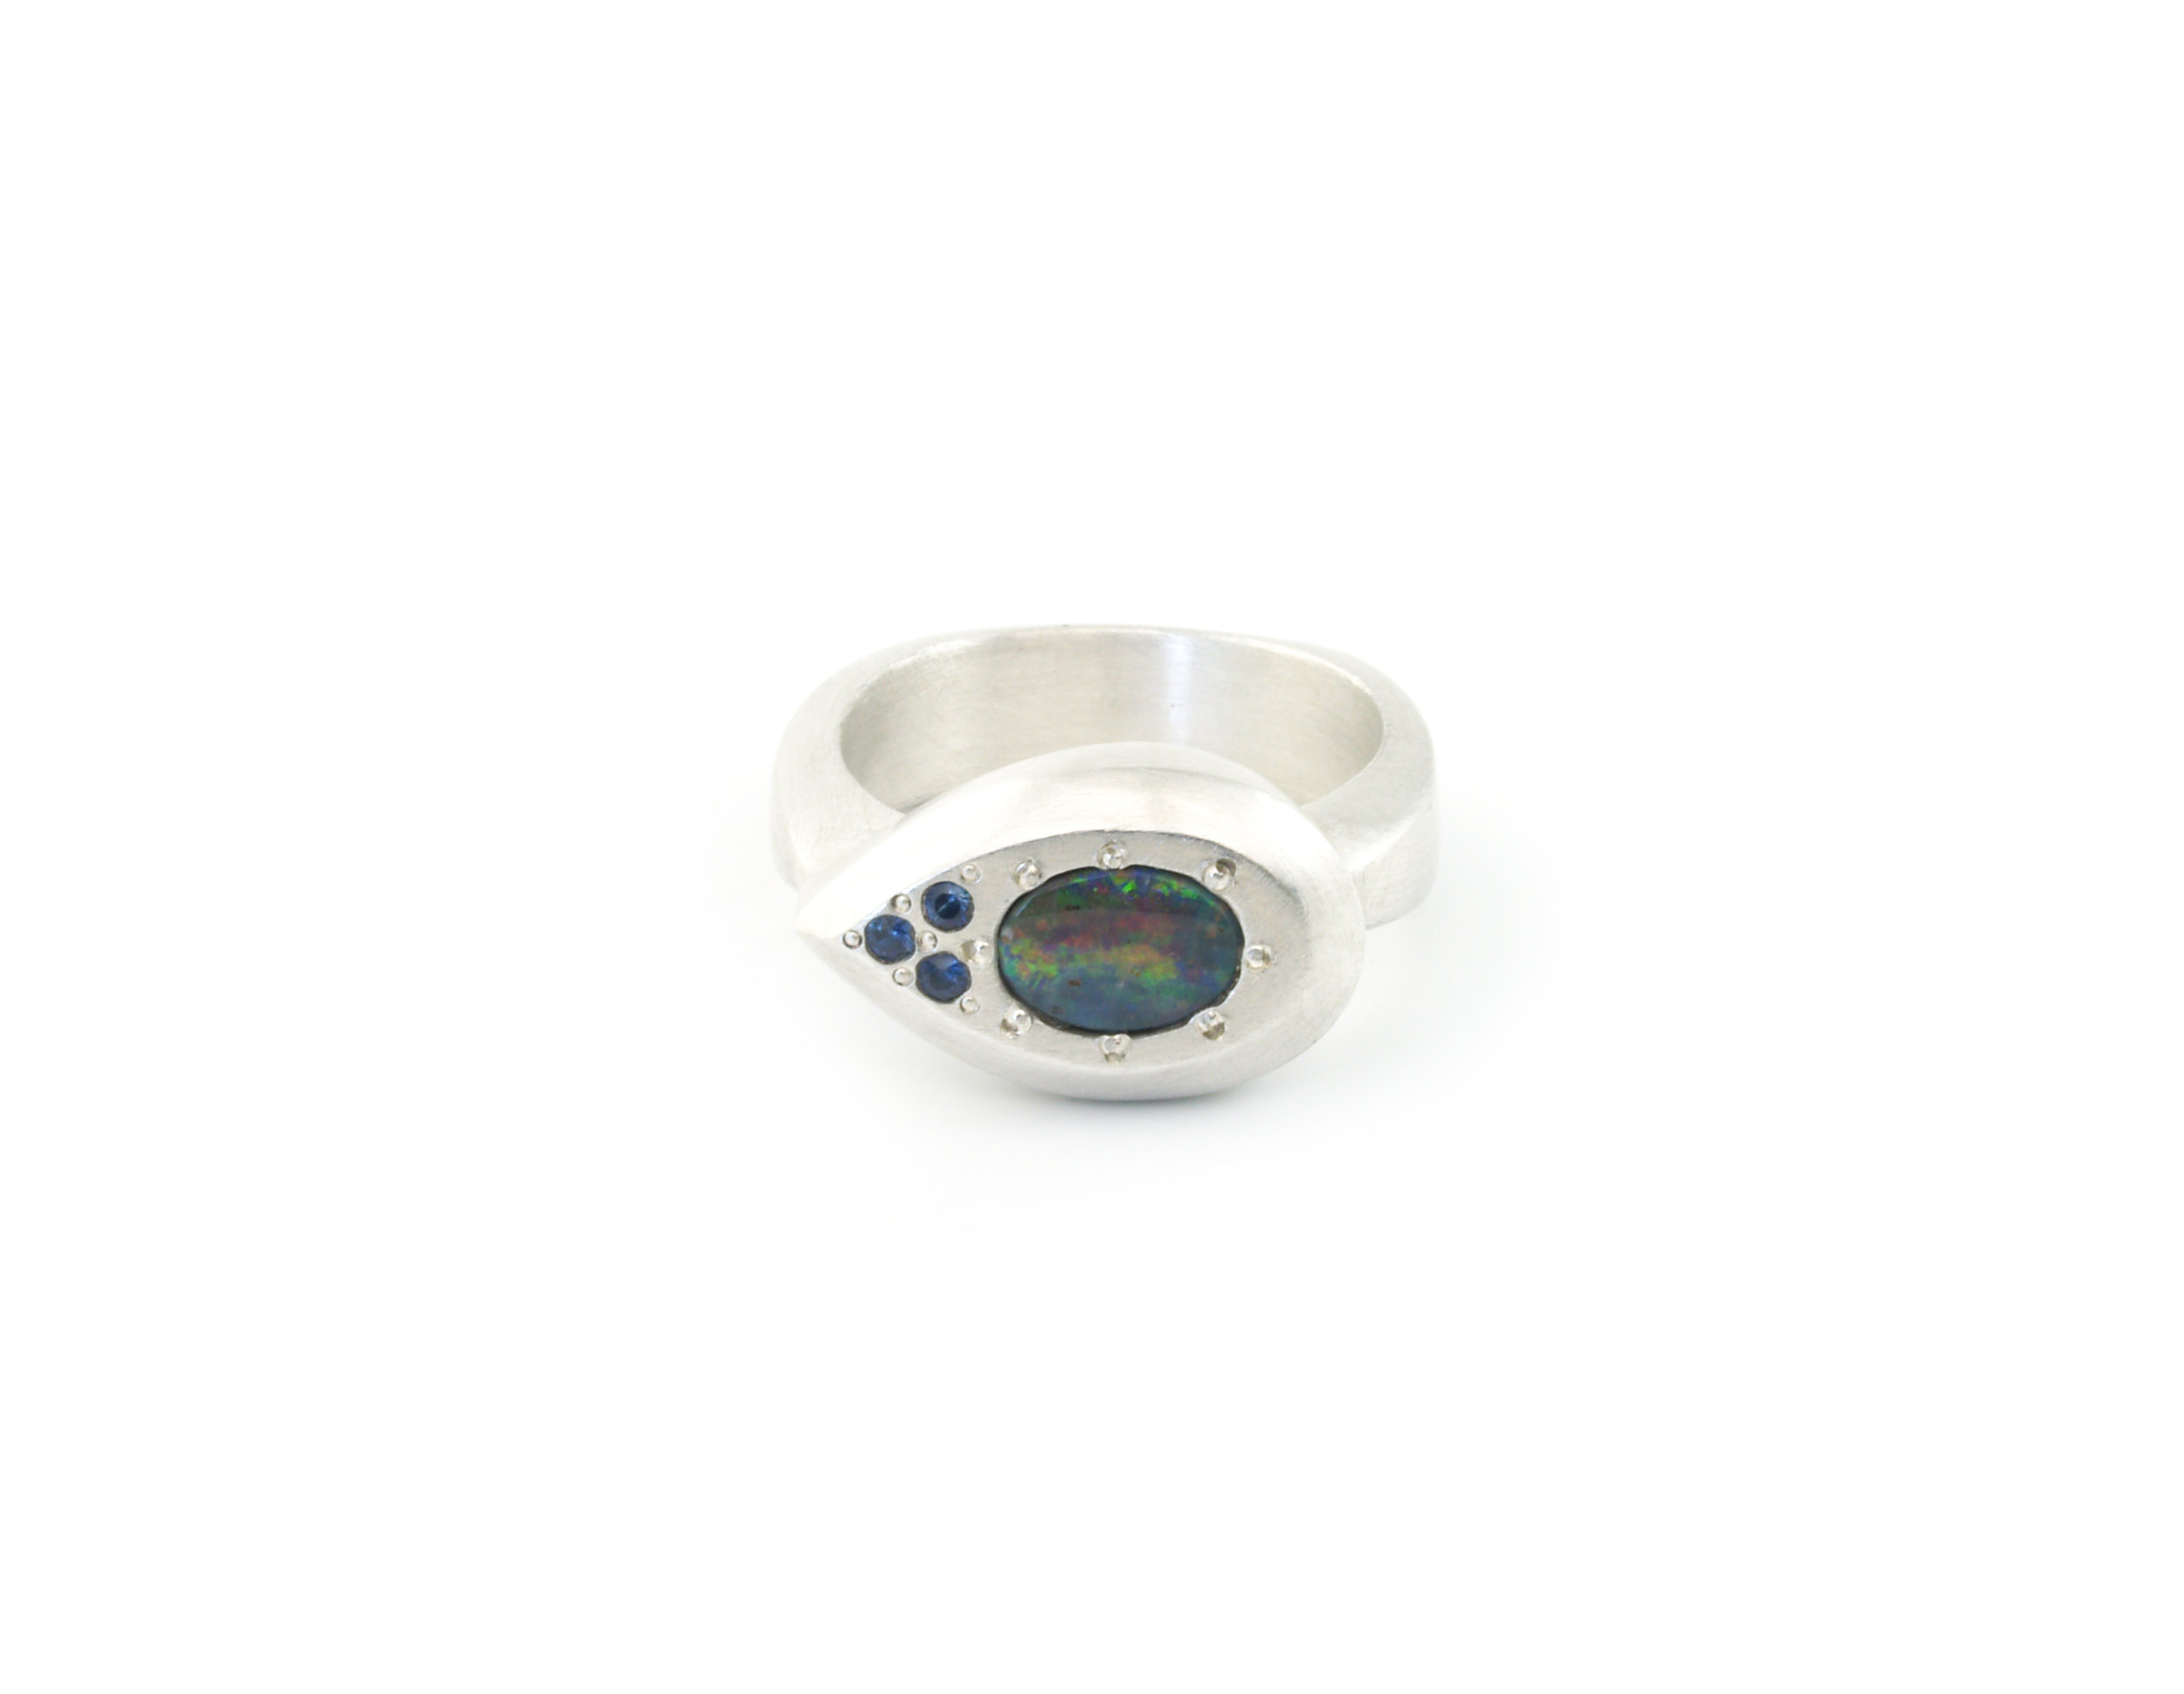 AUSTRALIAN OPAL AND SAPPHIRE RING